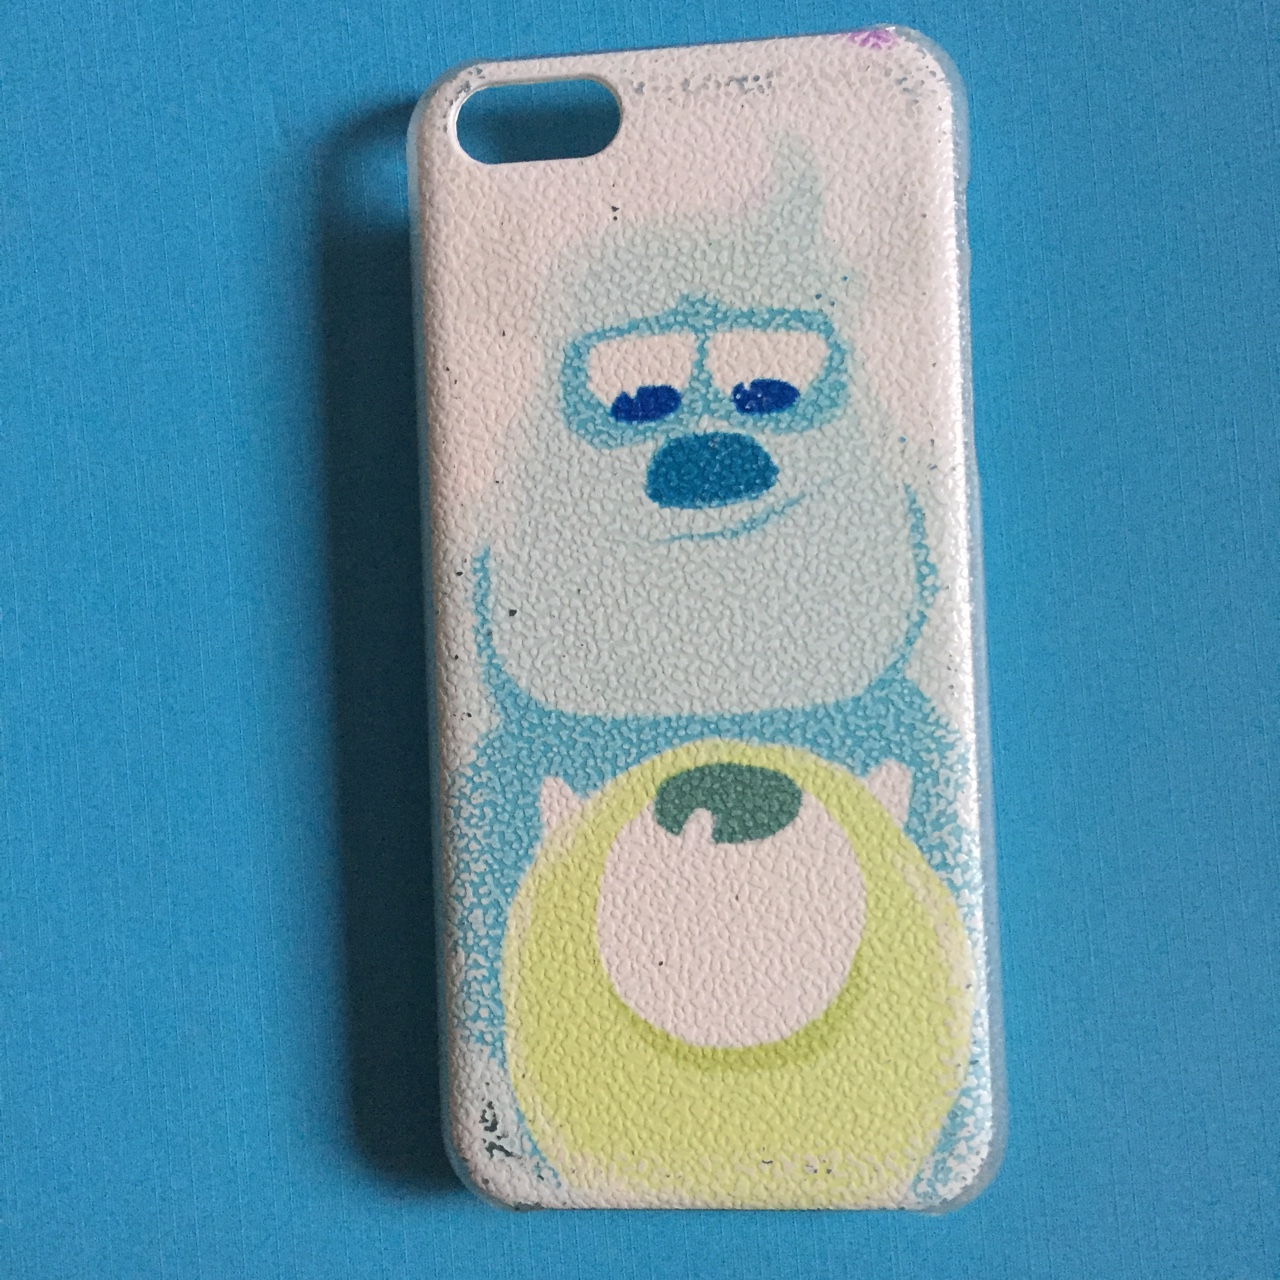 Iphone 5c Baby Monsters Inc Case Has Been Used So A Depop